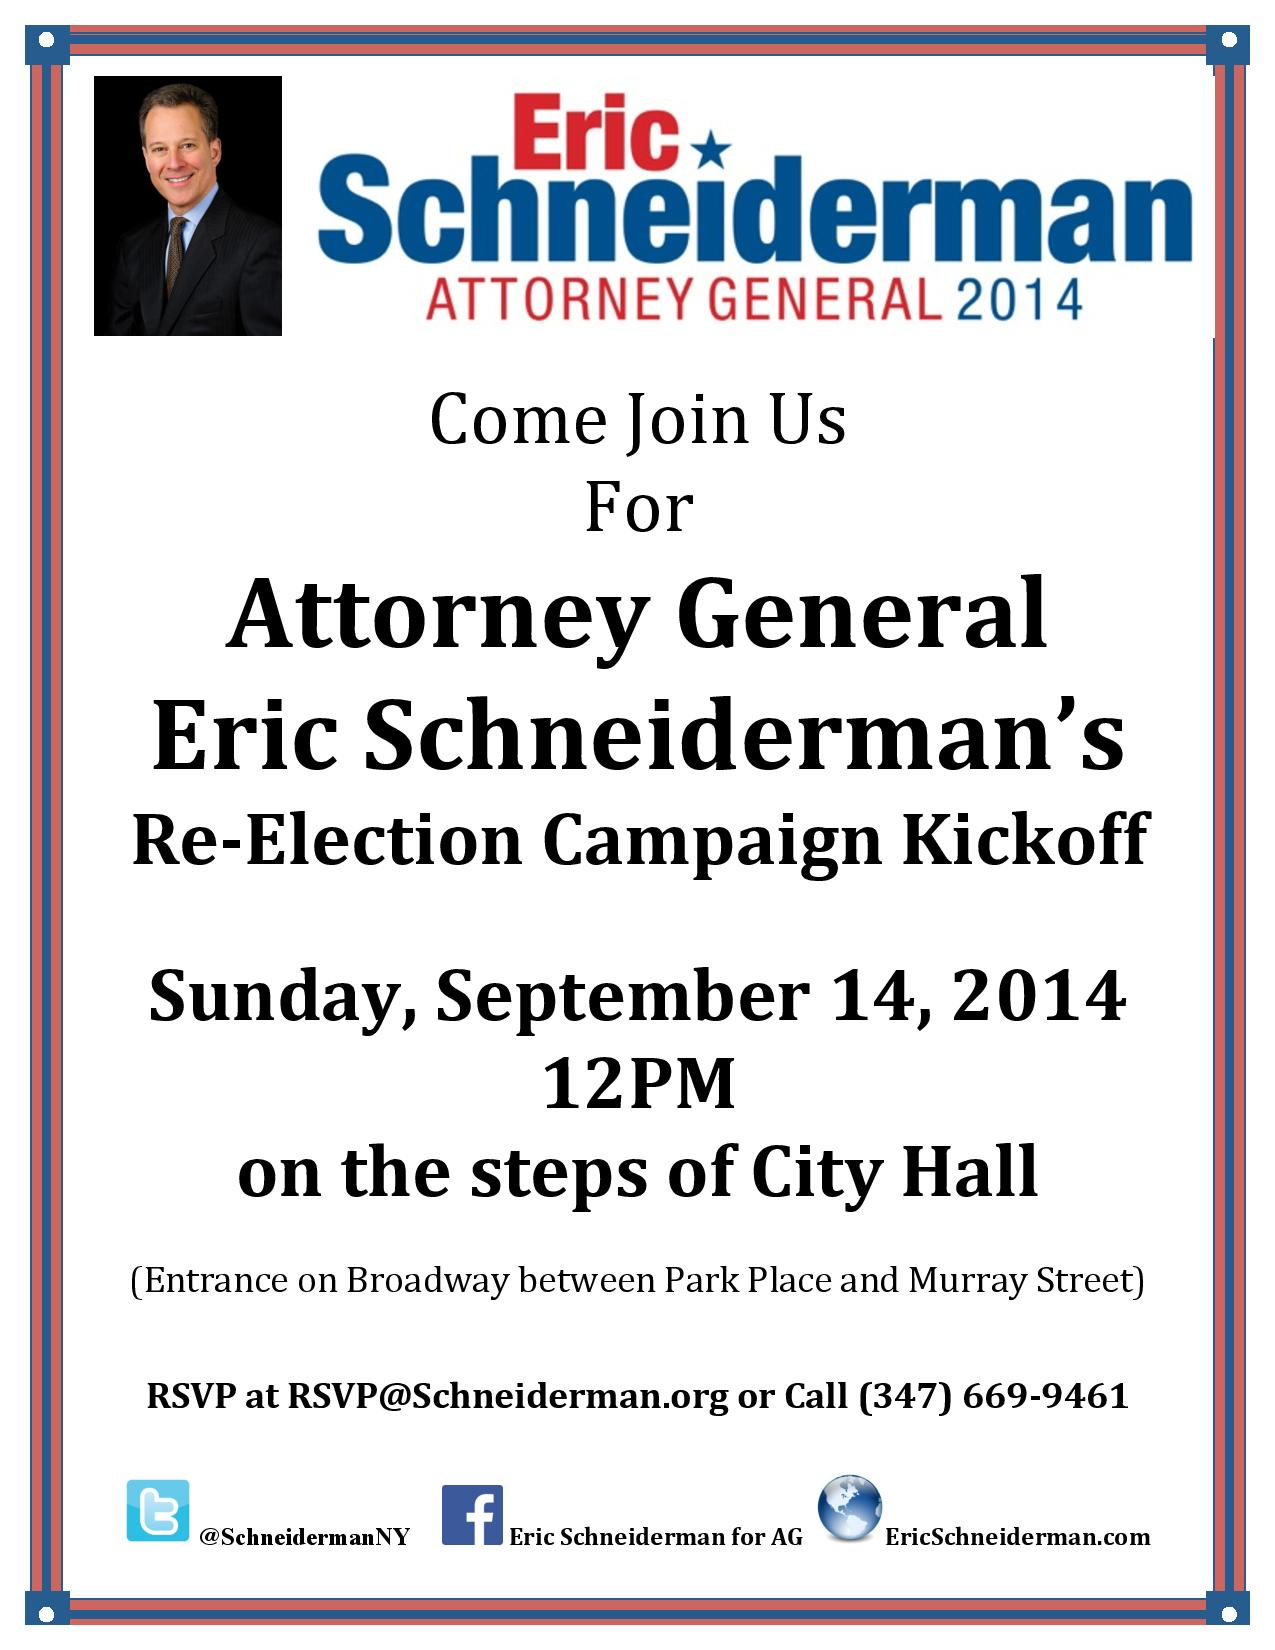 NYC_Campaign_KickOff_2014_Flyer-page-001.jpg